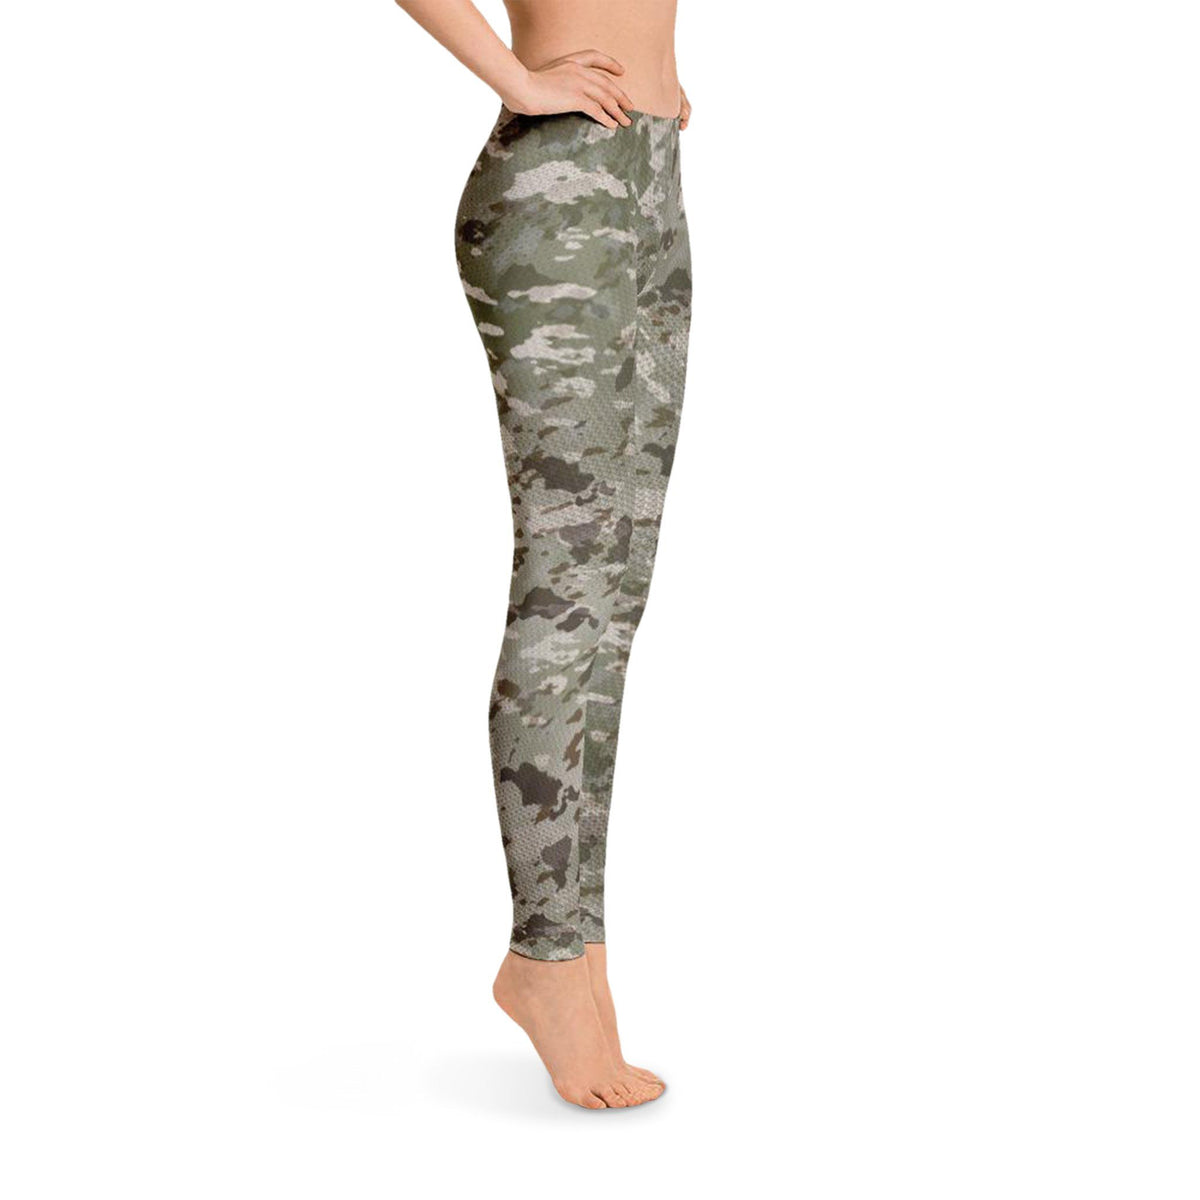 SHROWD Leggings Clothing TITAN Survival